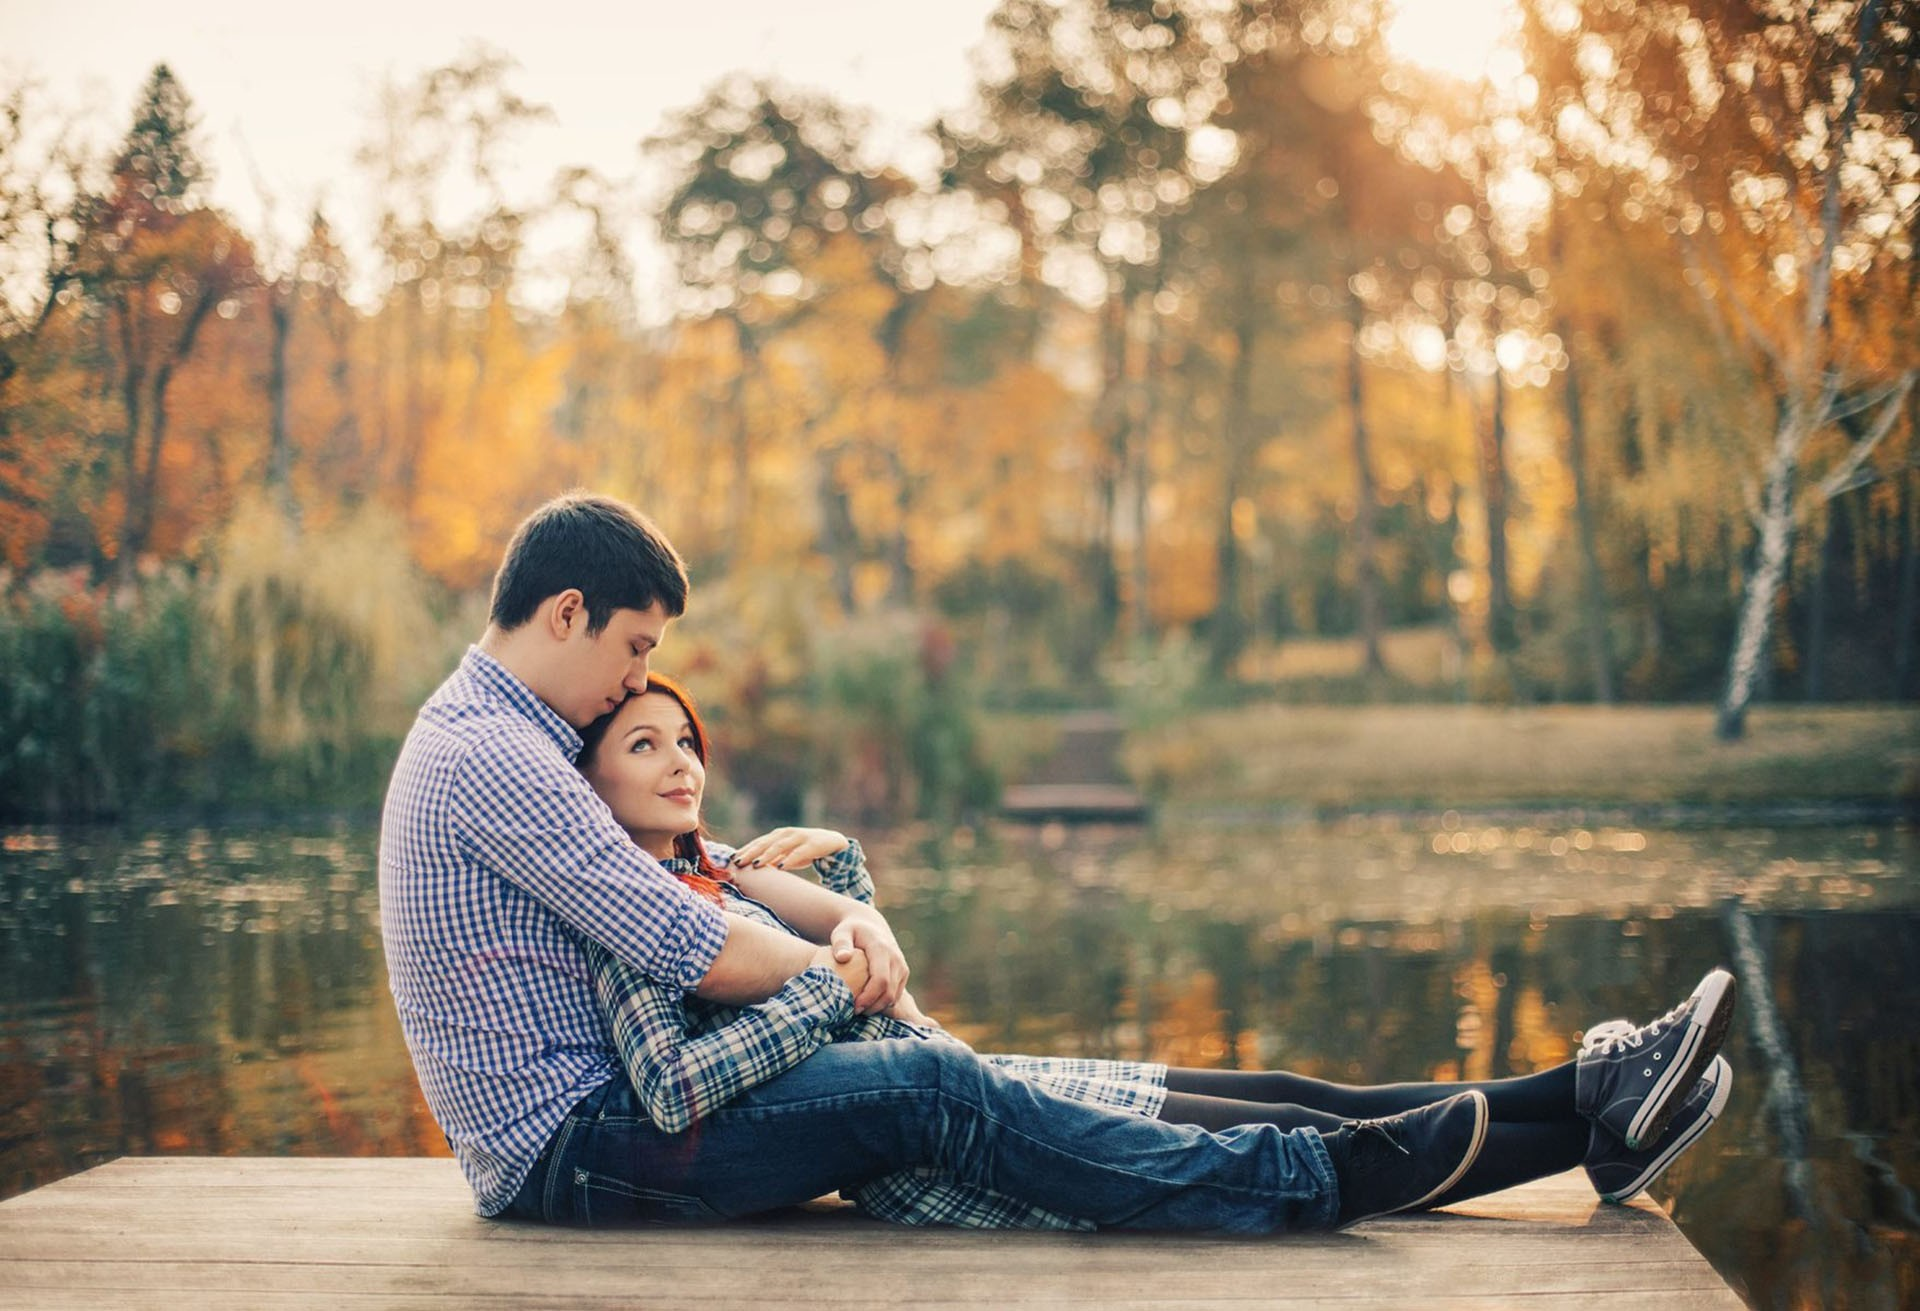 romantic images hd wallpapers 50 wallpapers � adorable